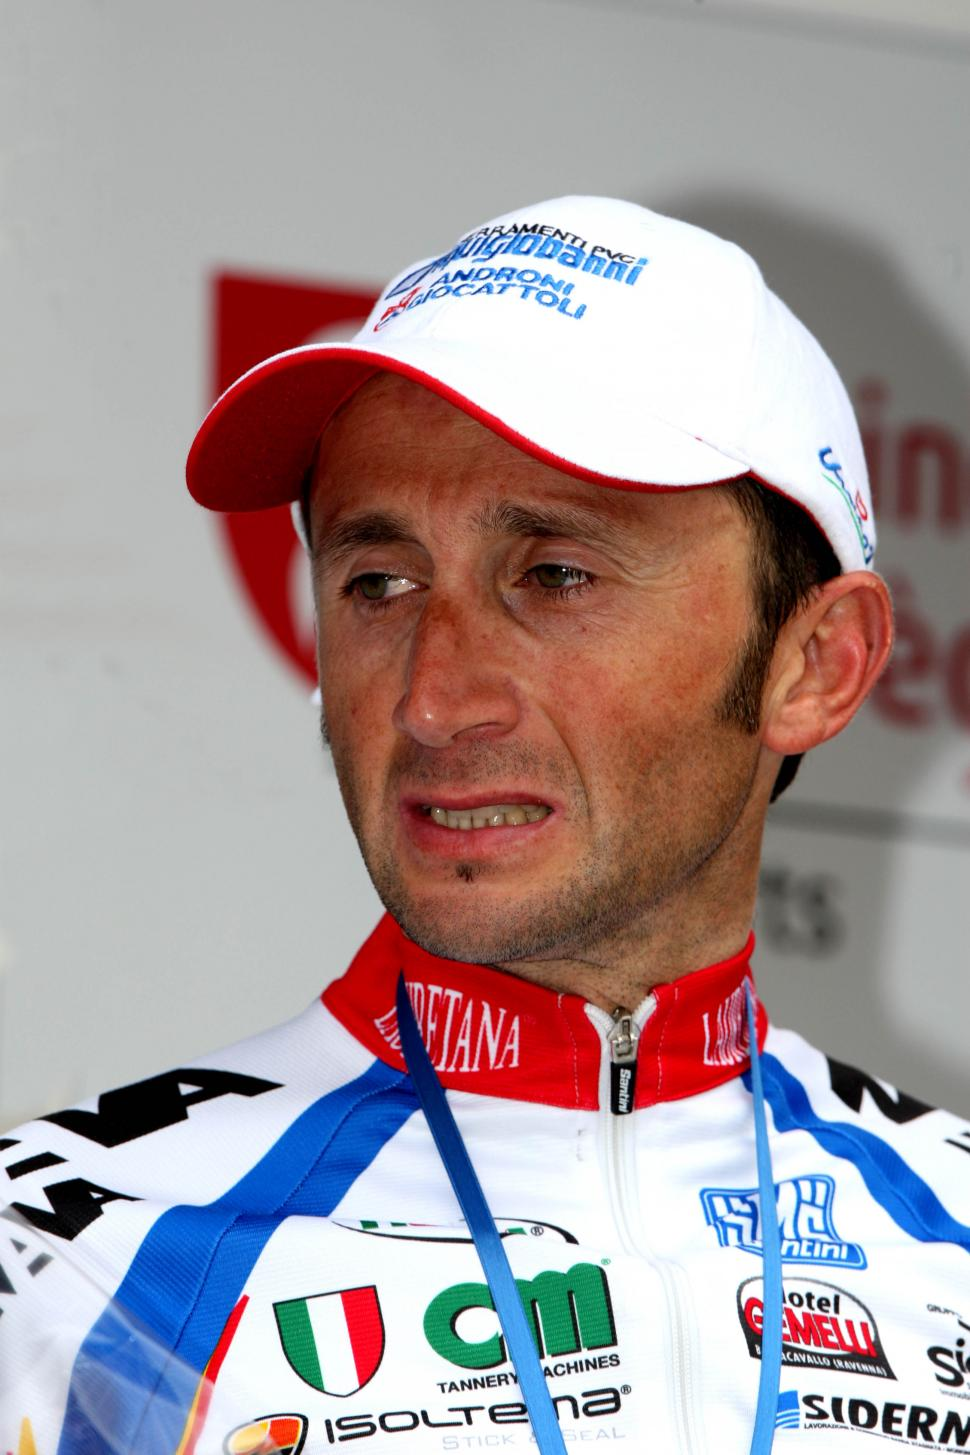 Davide Rebellin after winning the 2009  Fleche Wallone (© Photosport International)